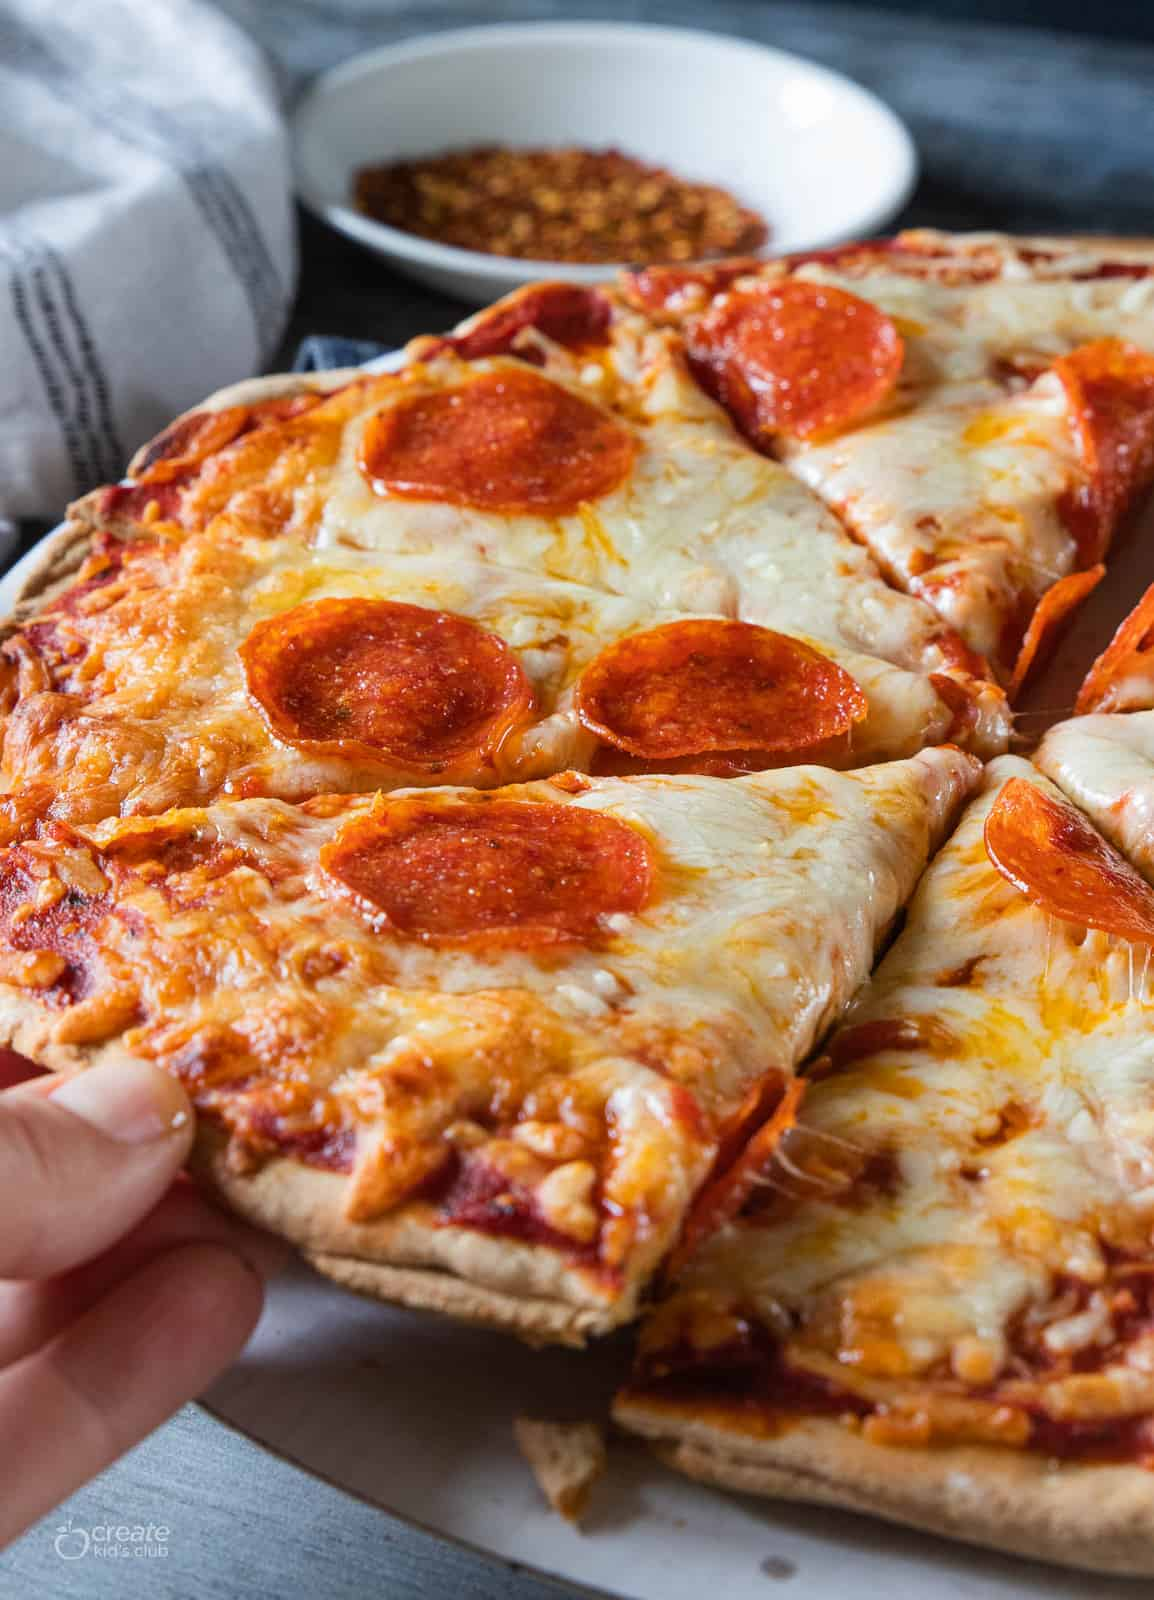 A hand is taking a slice of hot homemade pizza.